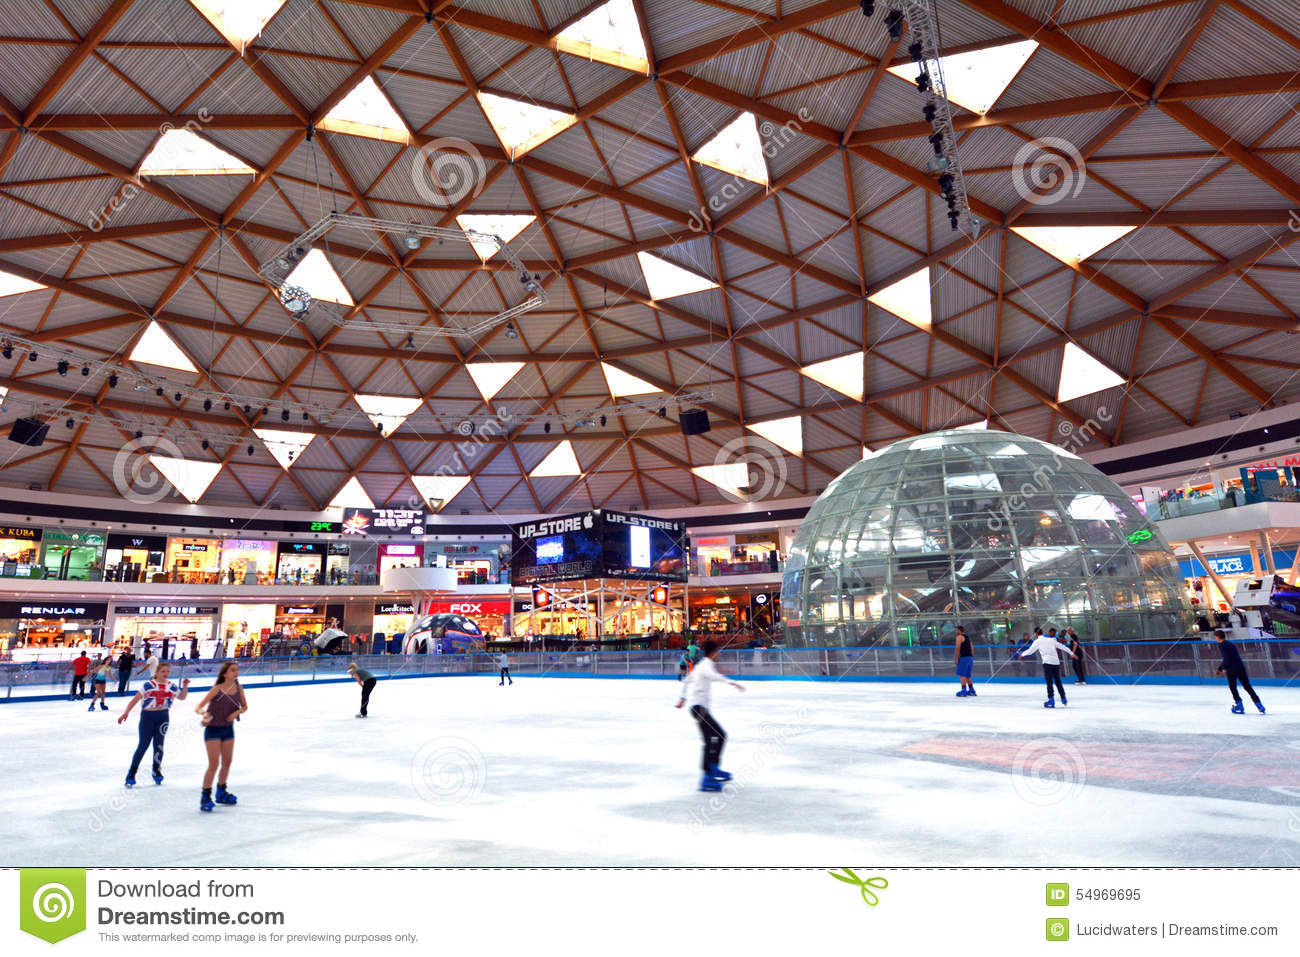 Eilat Ice Park and Mall in Eilat Israel